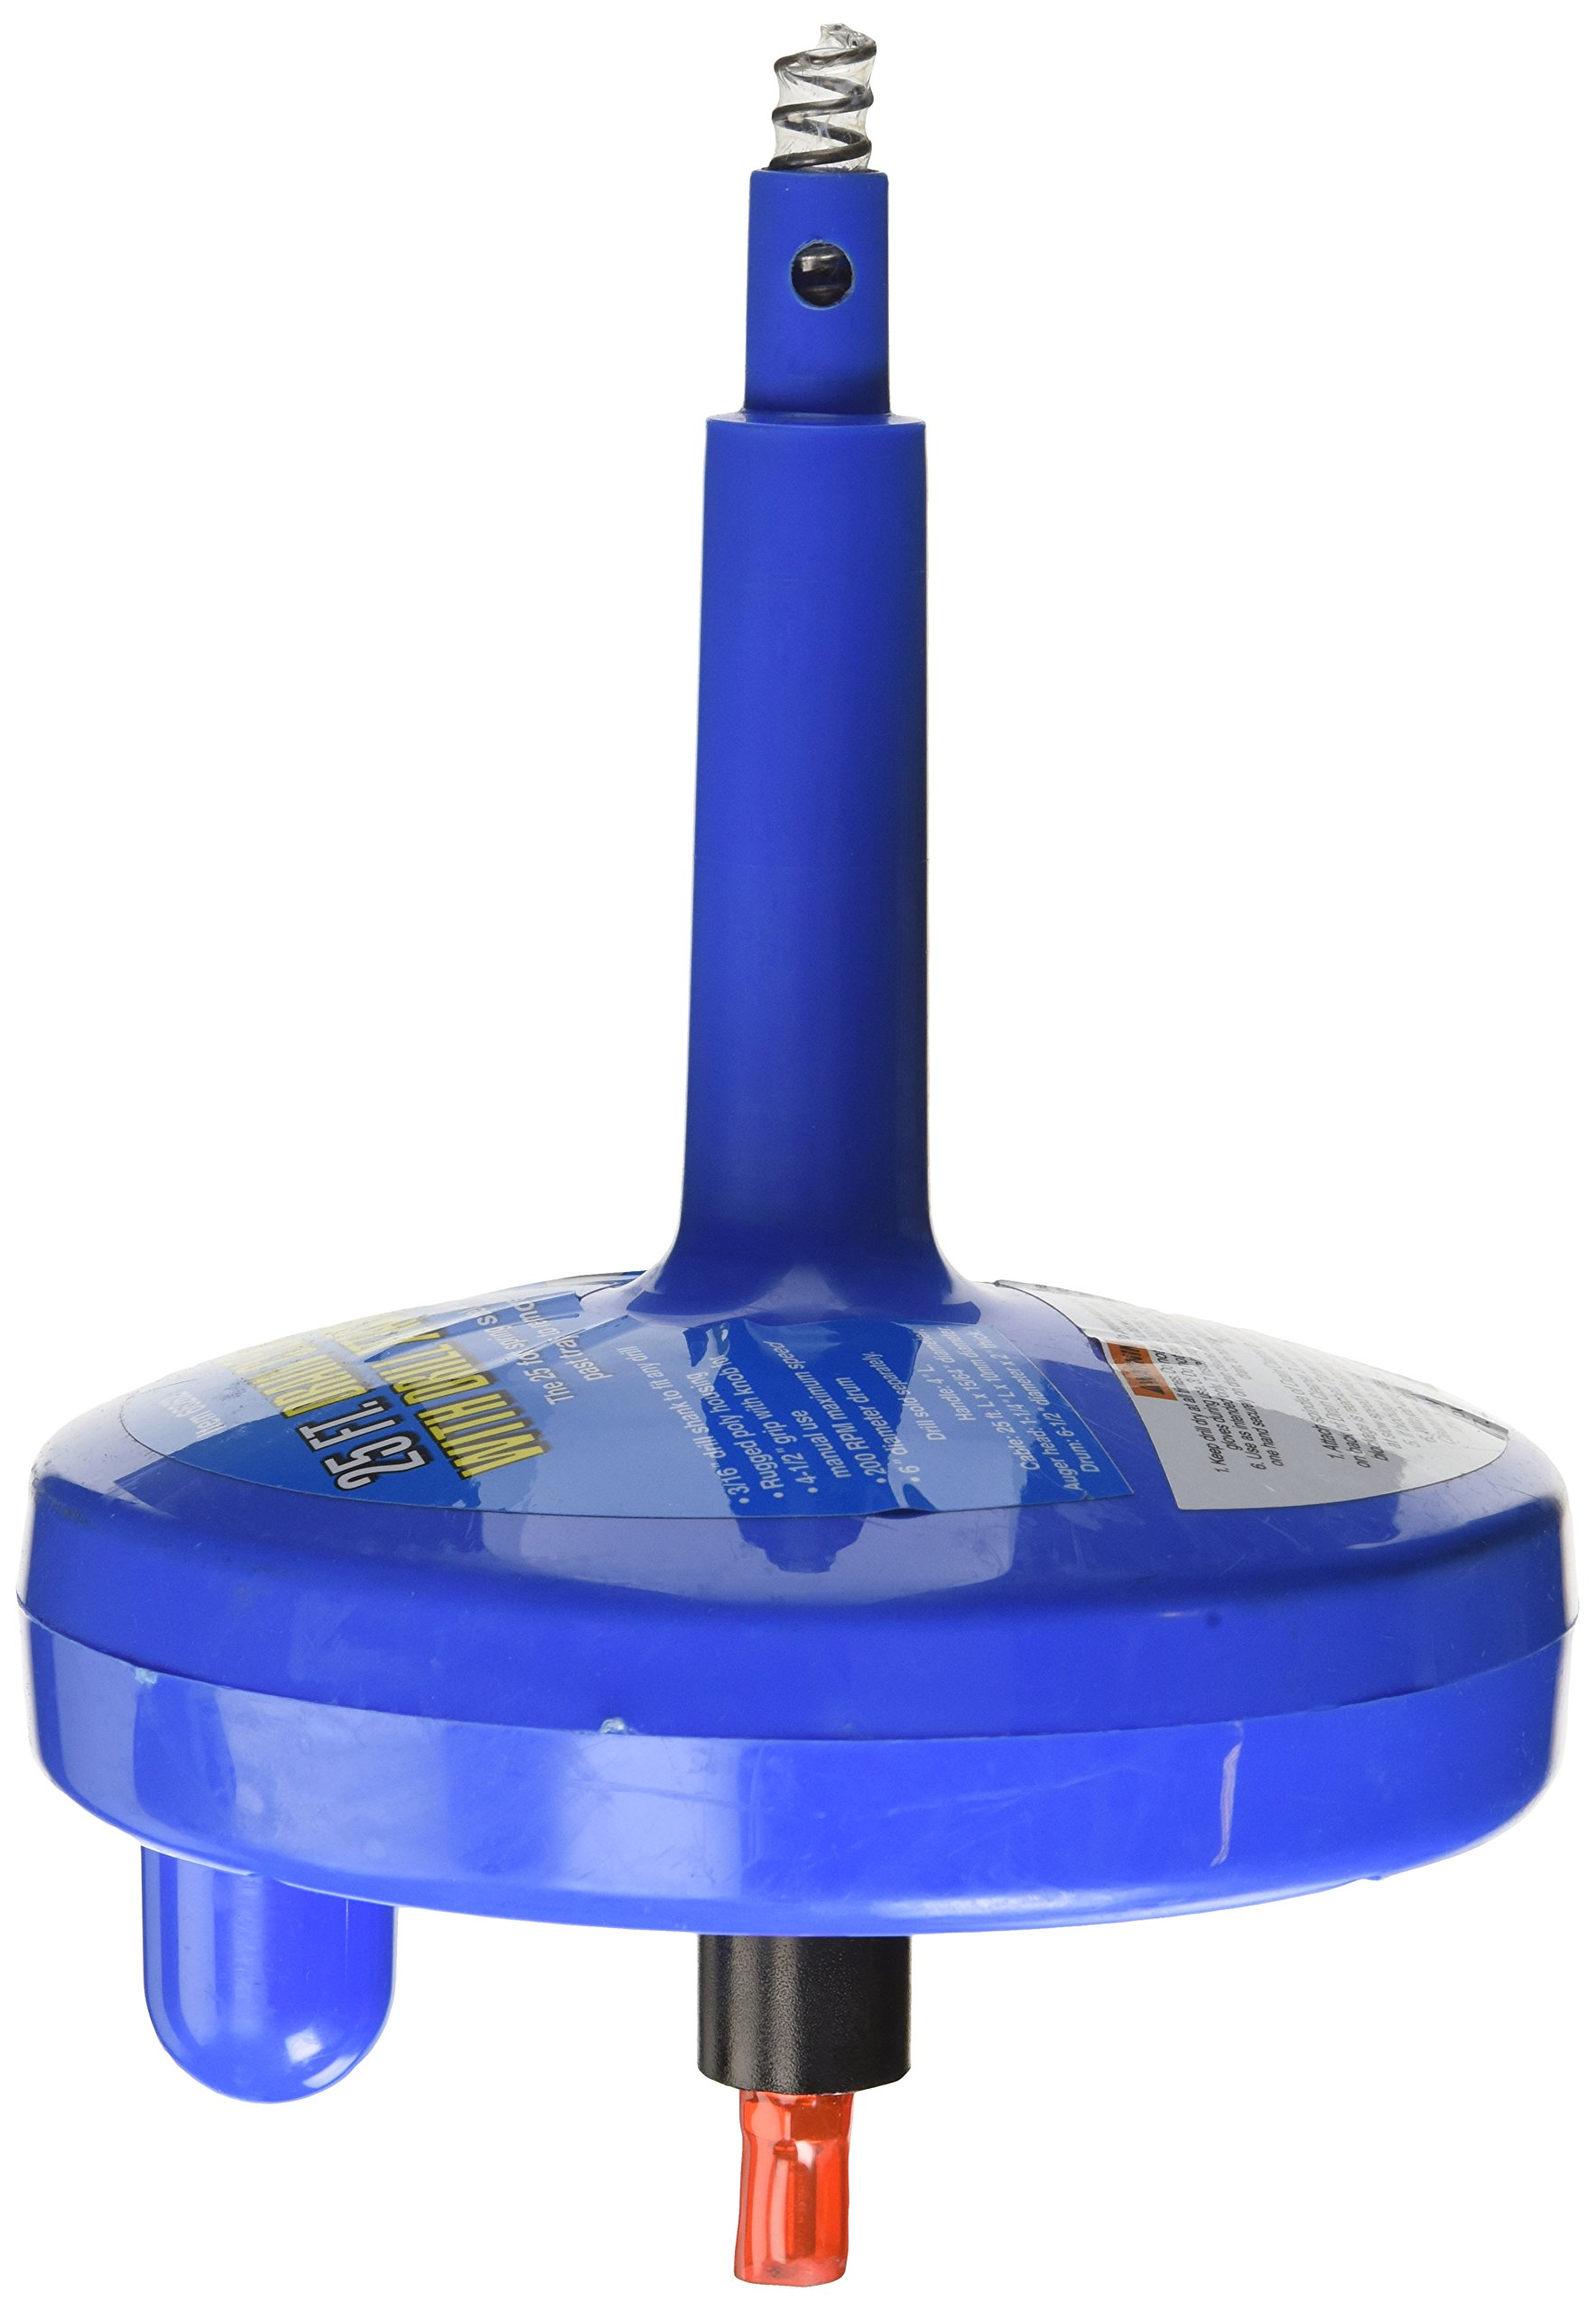 Drain Cleaner With Drill Attachment 25 Ft.